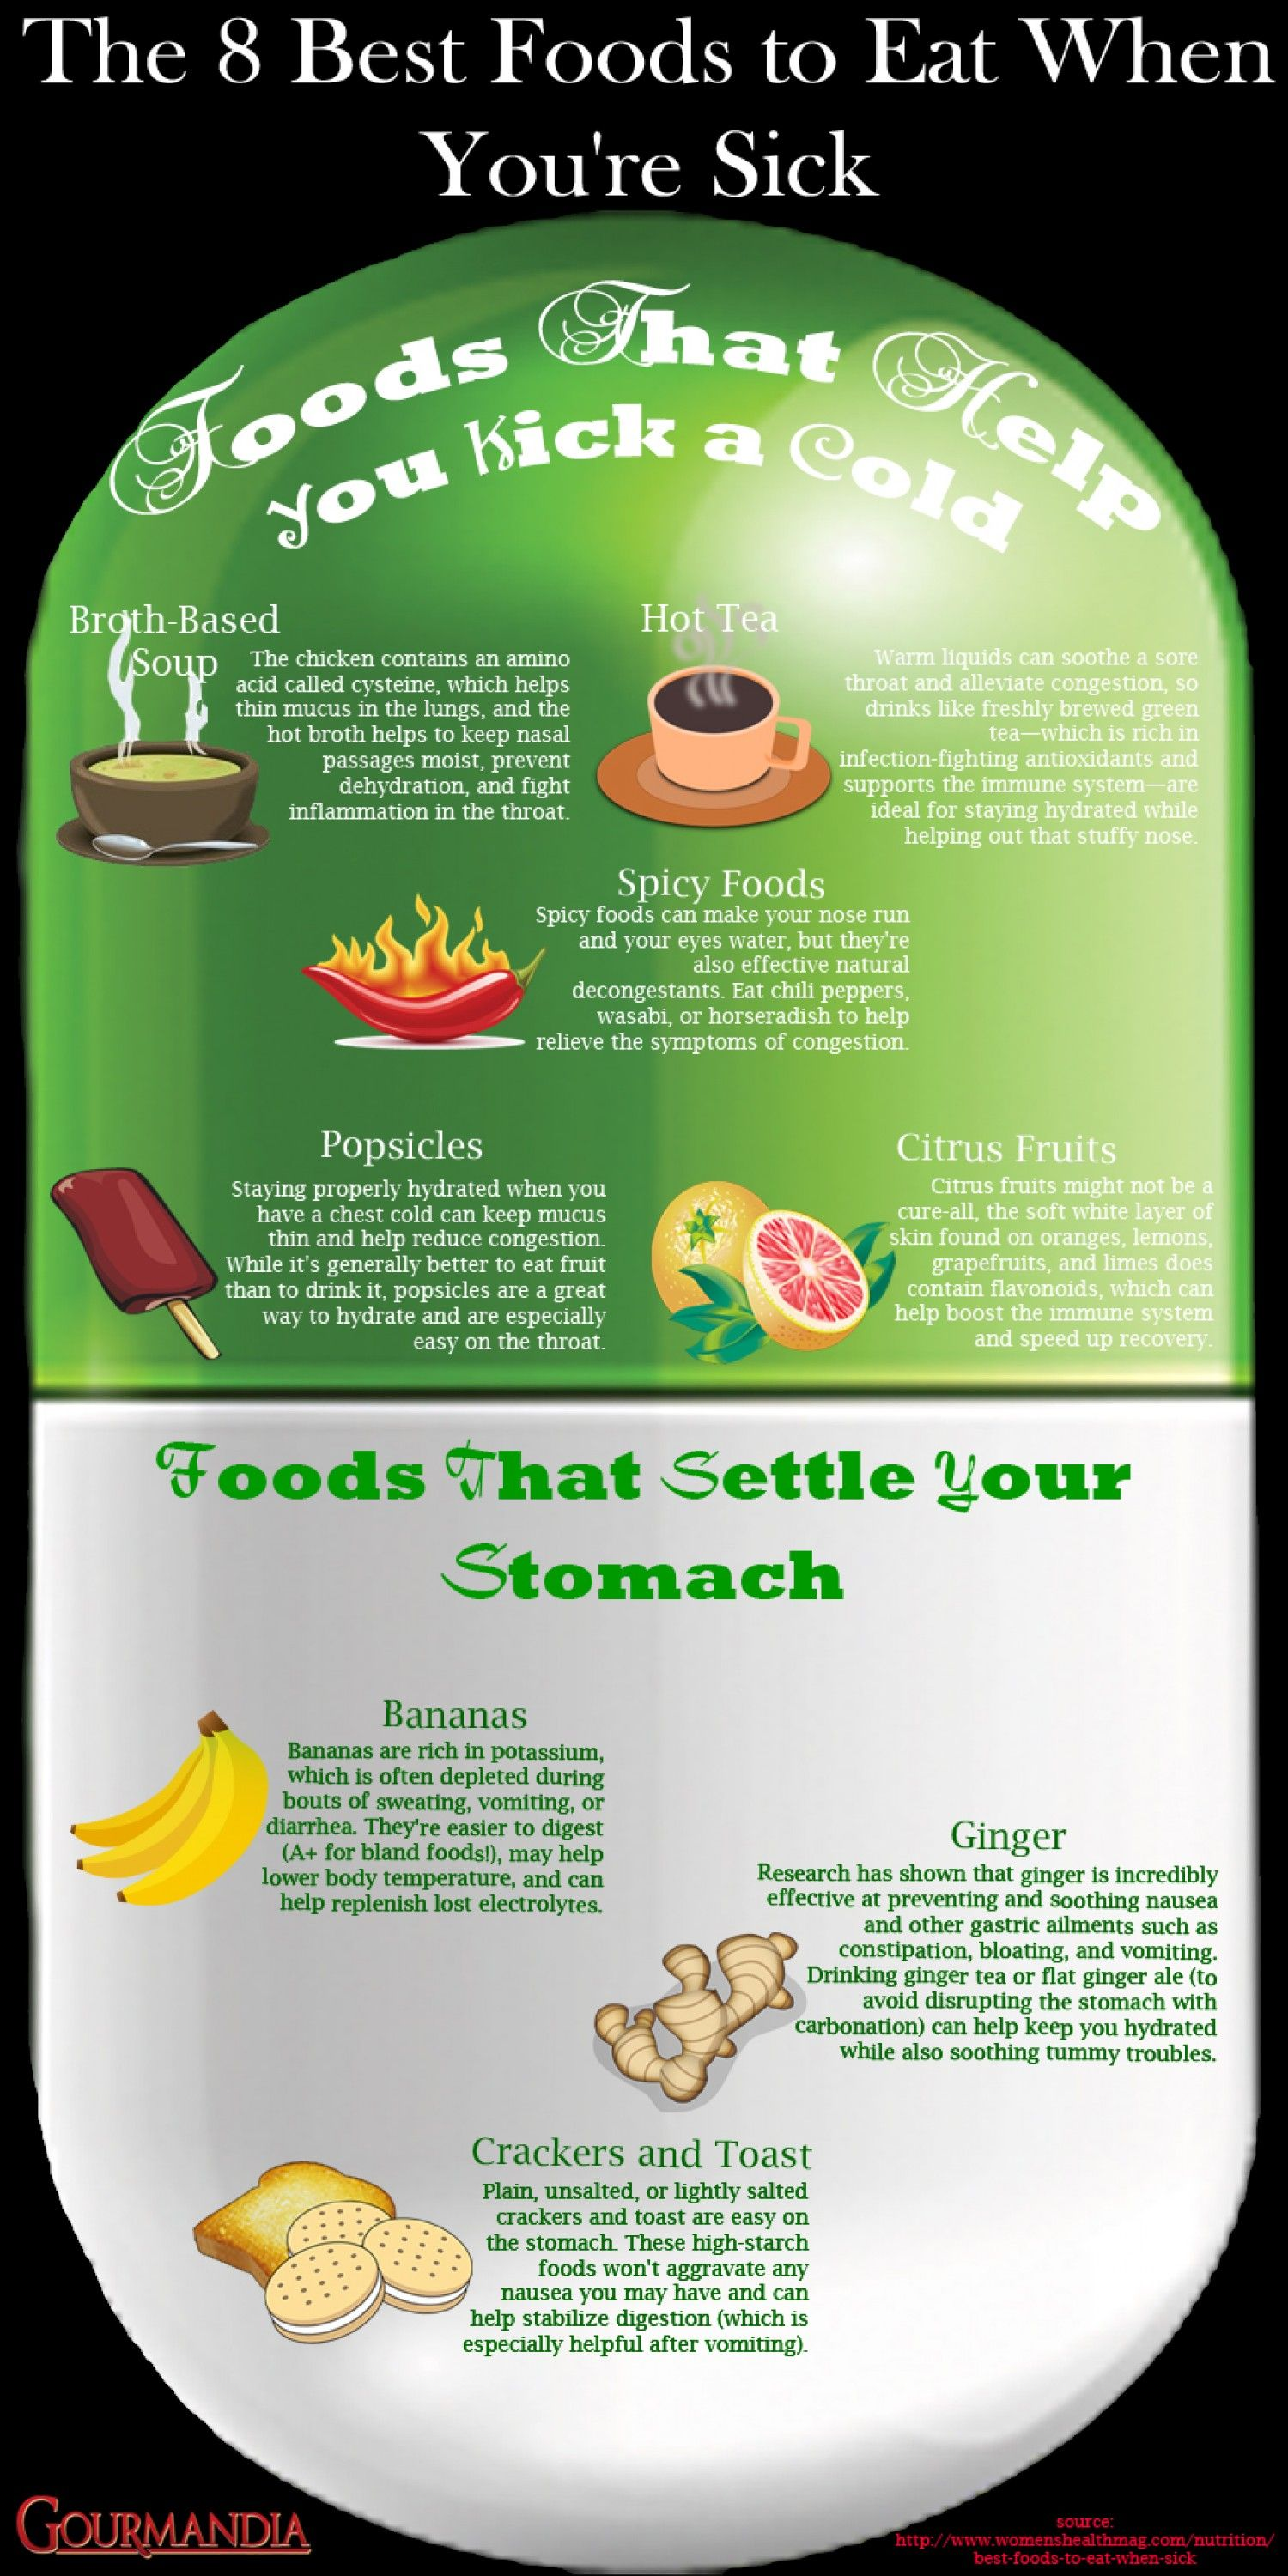 how to stay on a diet when sick